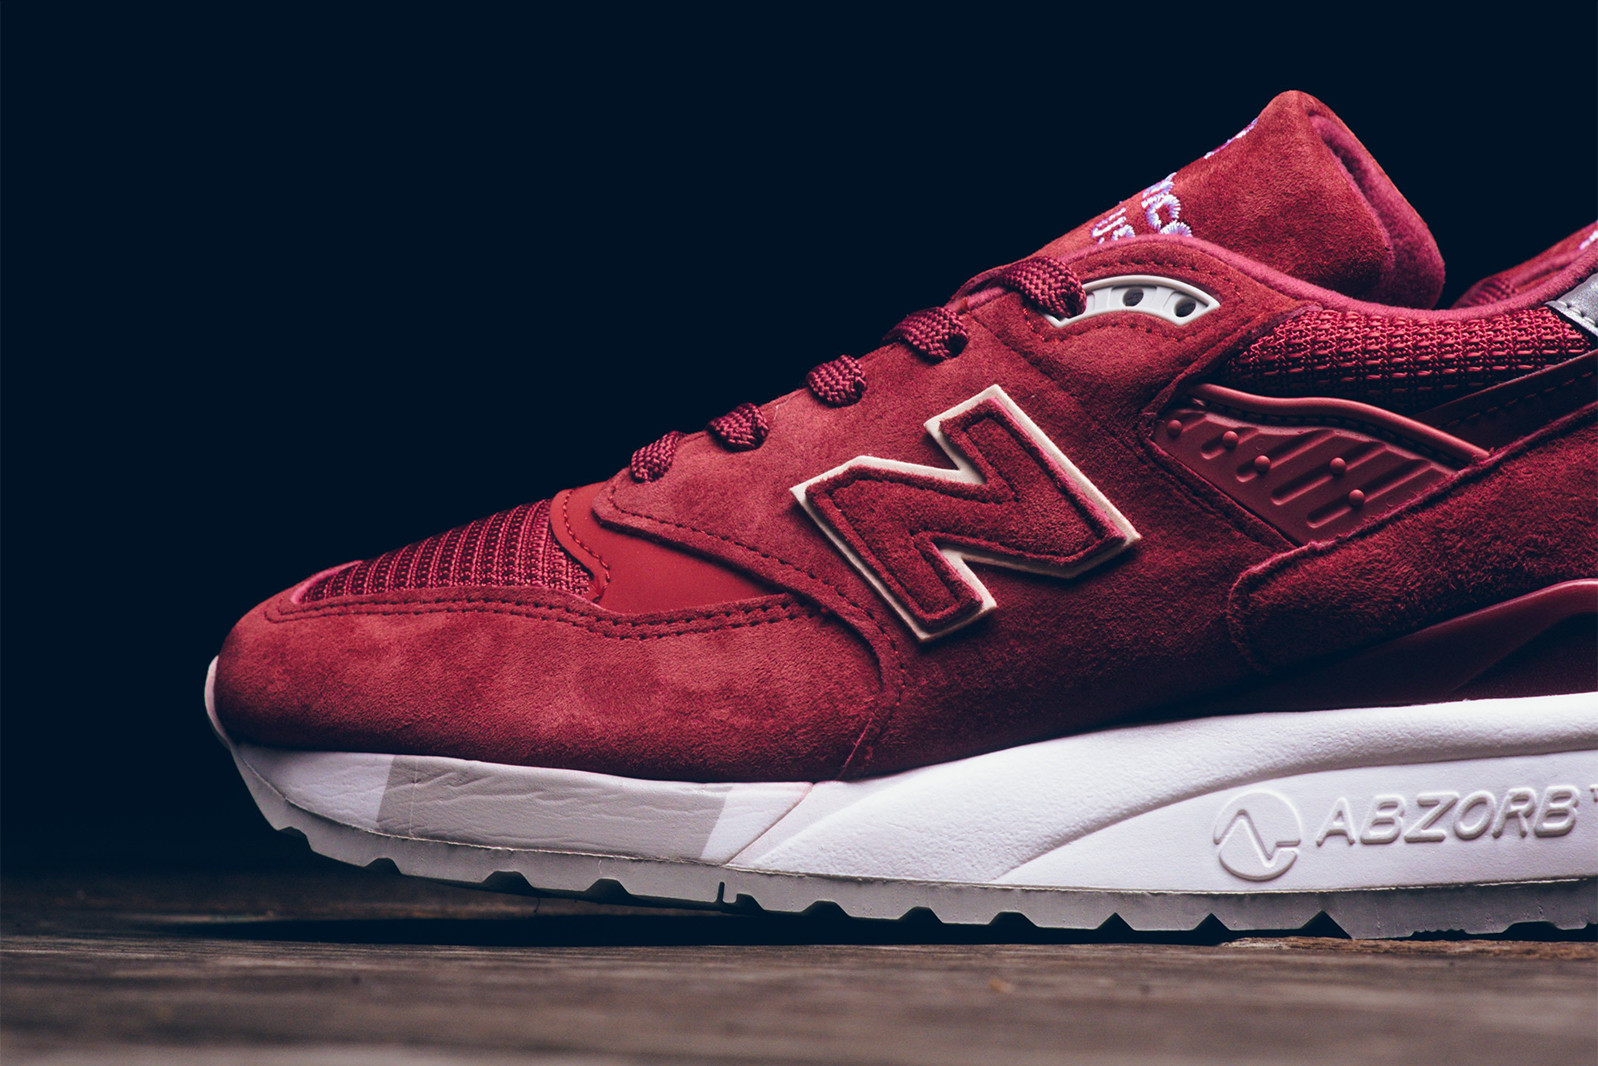 New Balance 998 RBE Red/White Release